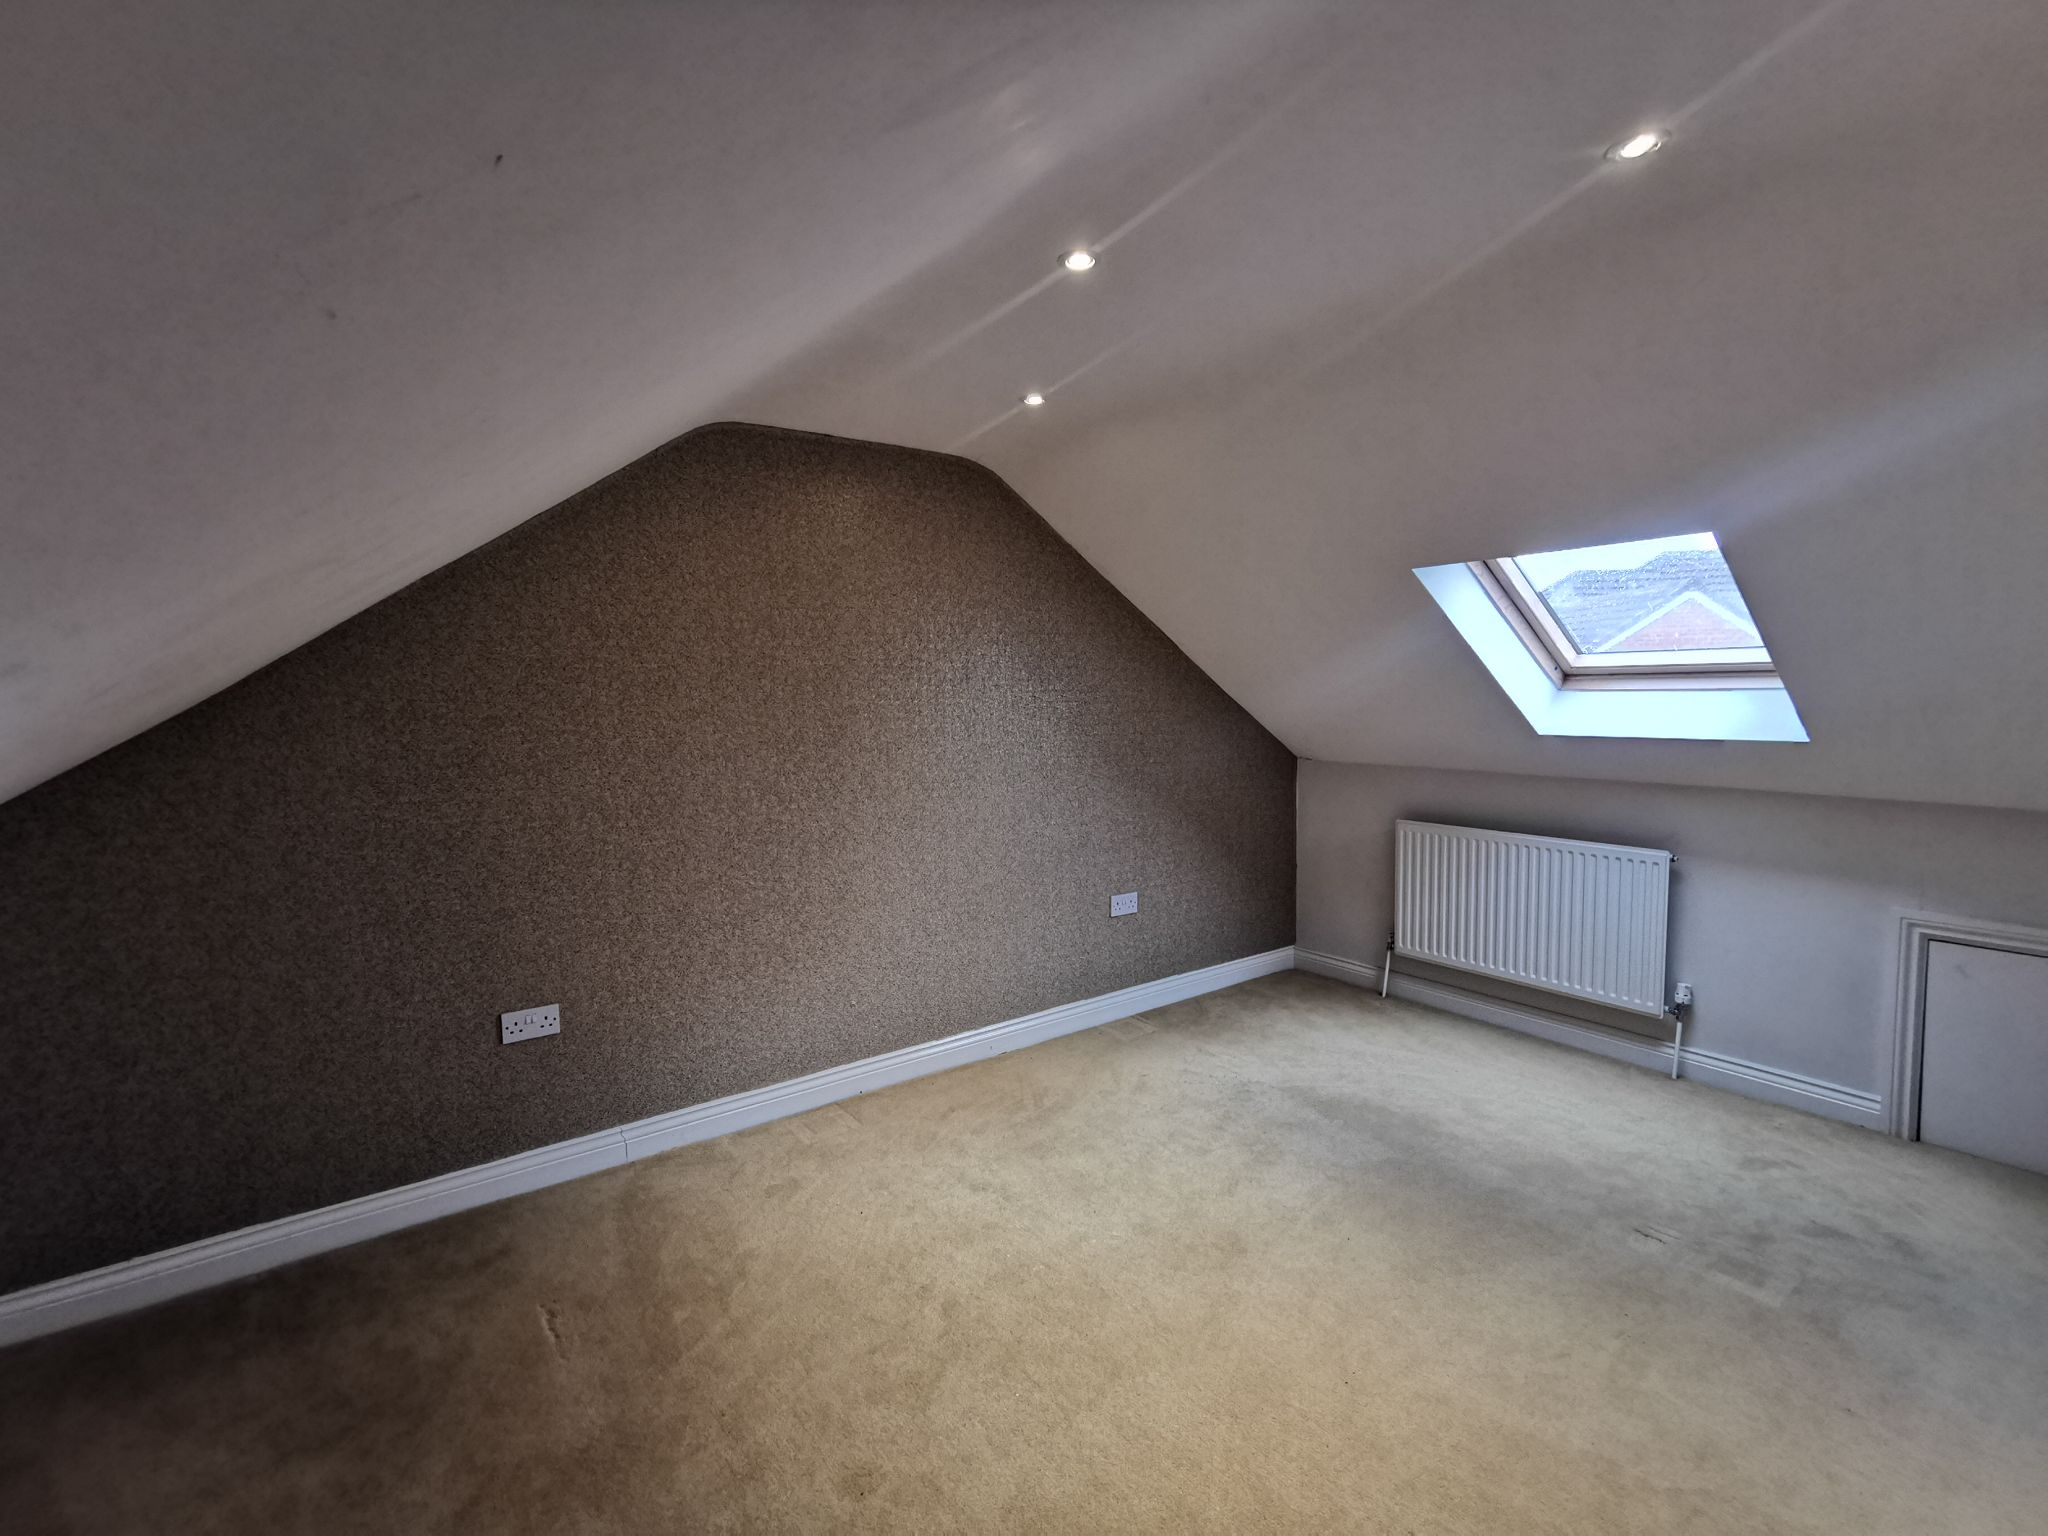 6 bedroom detached bungalow For Sale in Bradford - Photograph 24.